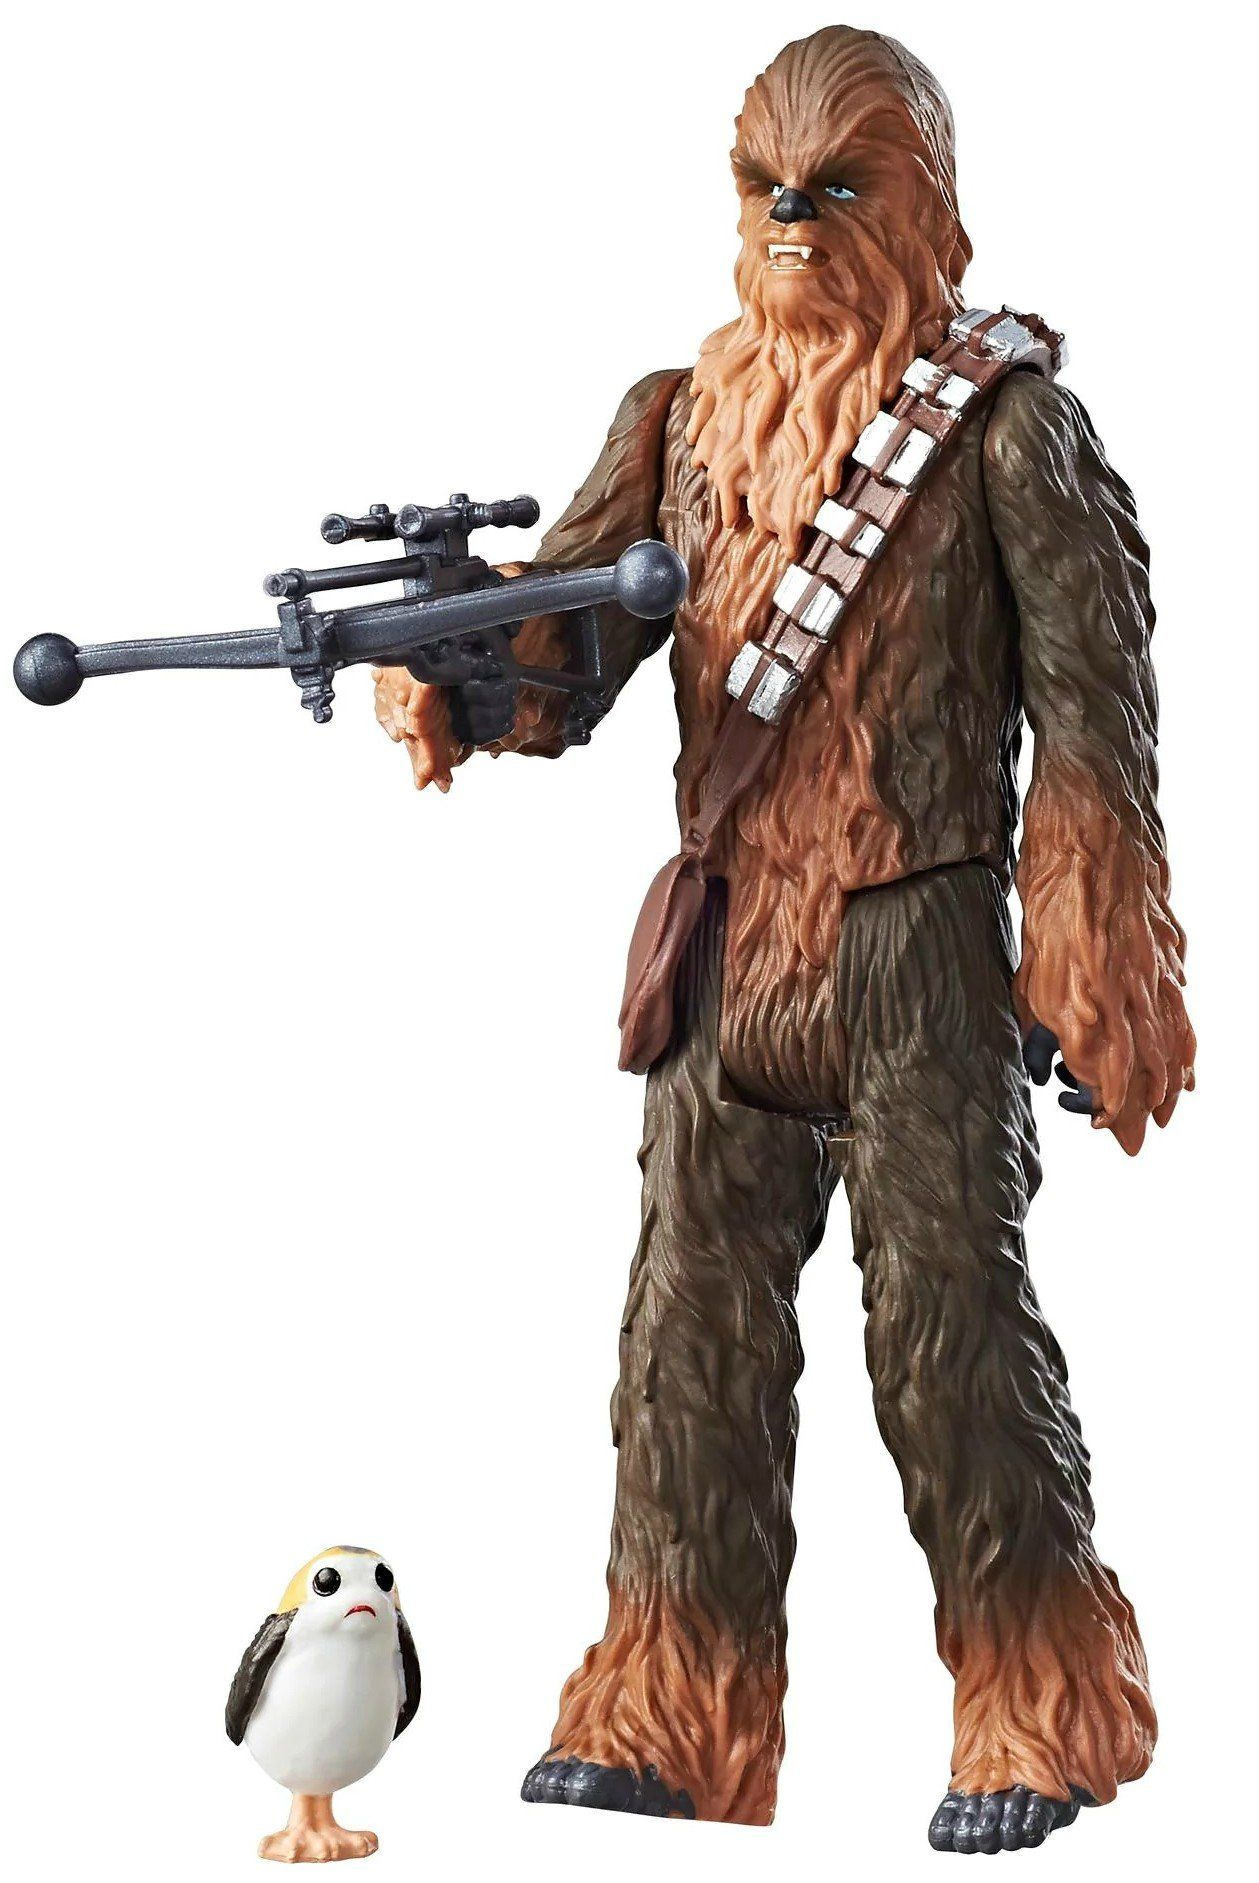 Boneco Chewbacca (Force Link): Star Wars The Last Jedi (Os Últimos Jedi) - Hasbro